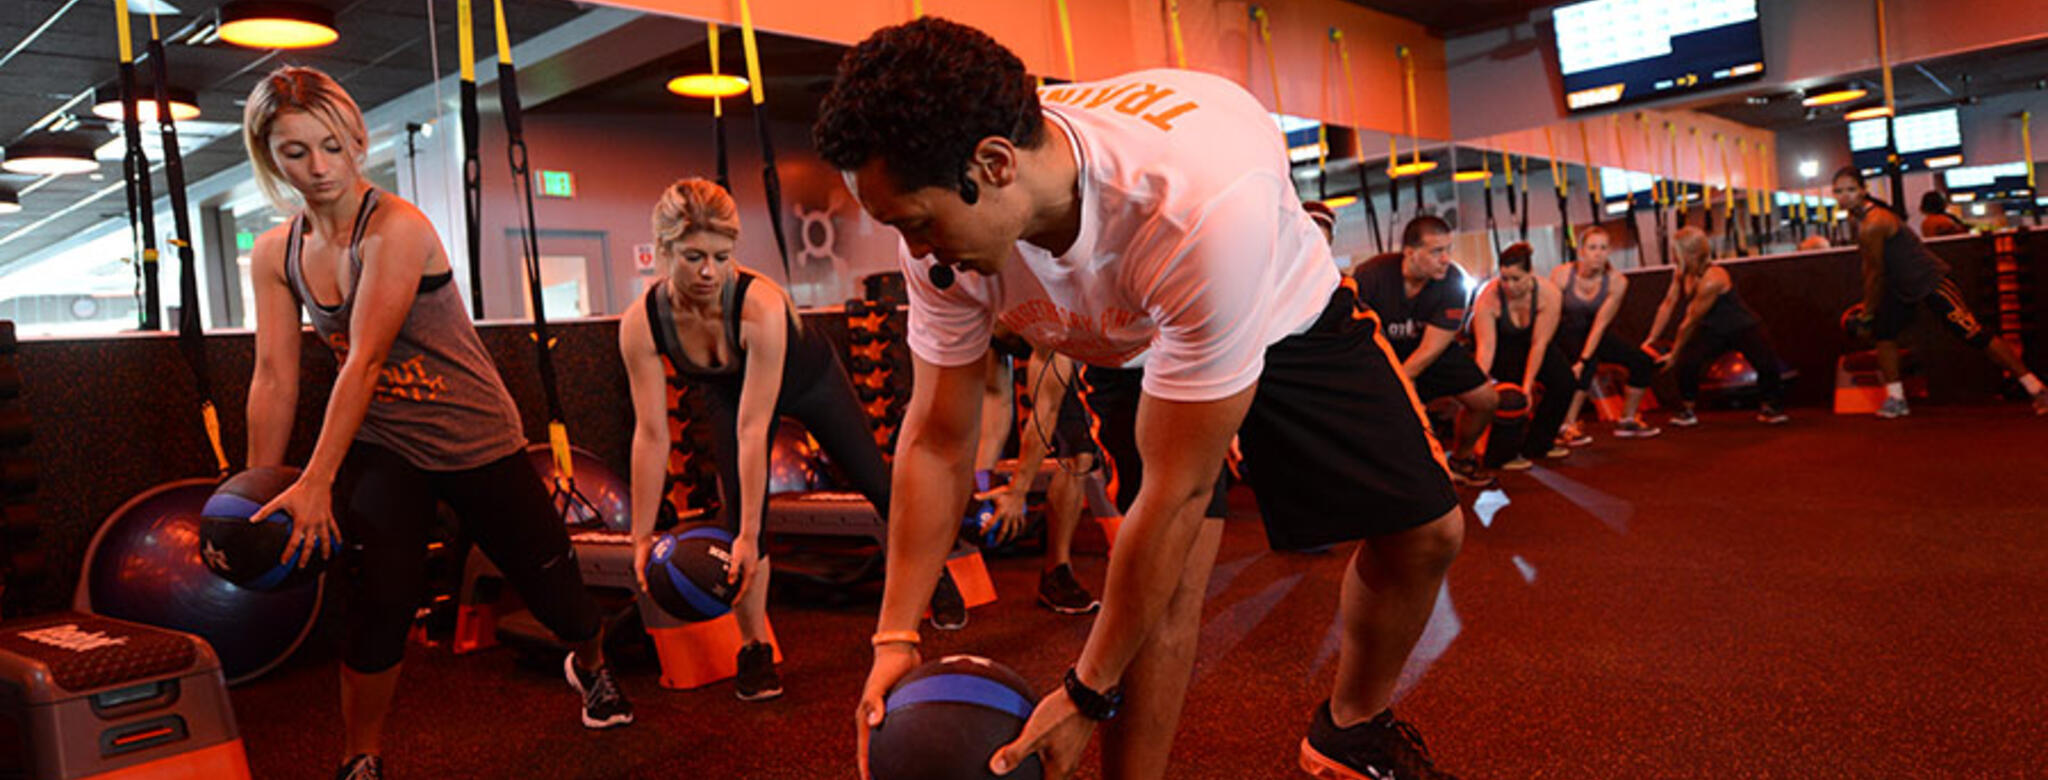 Group fitness class at Orangetheory